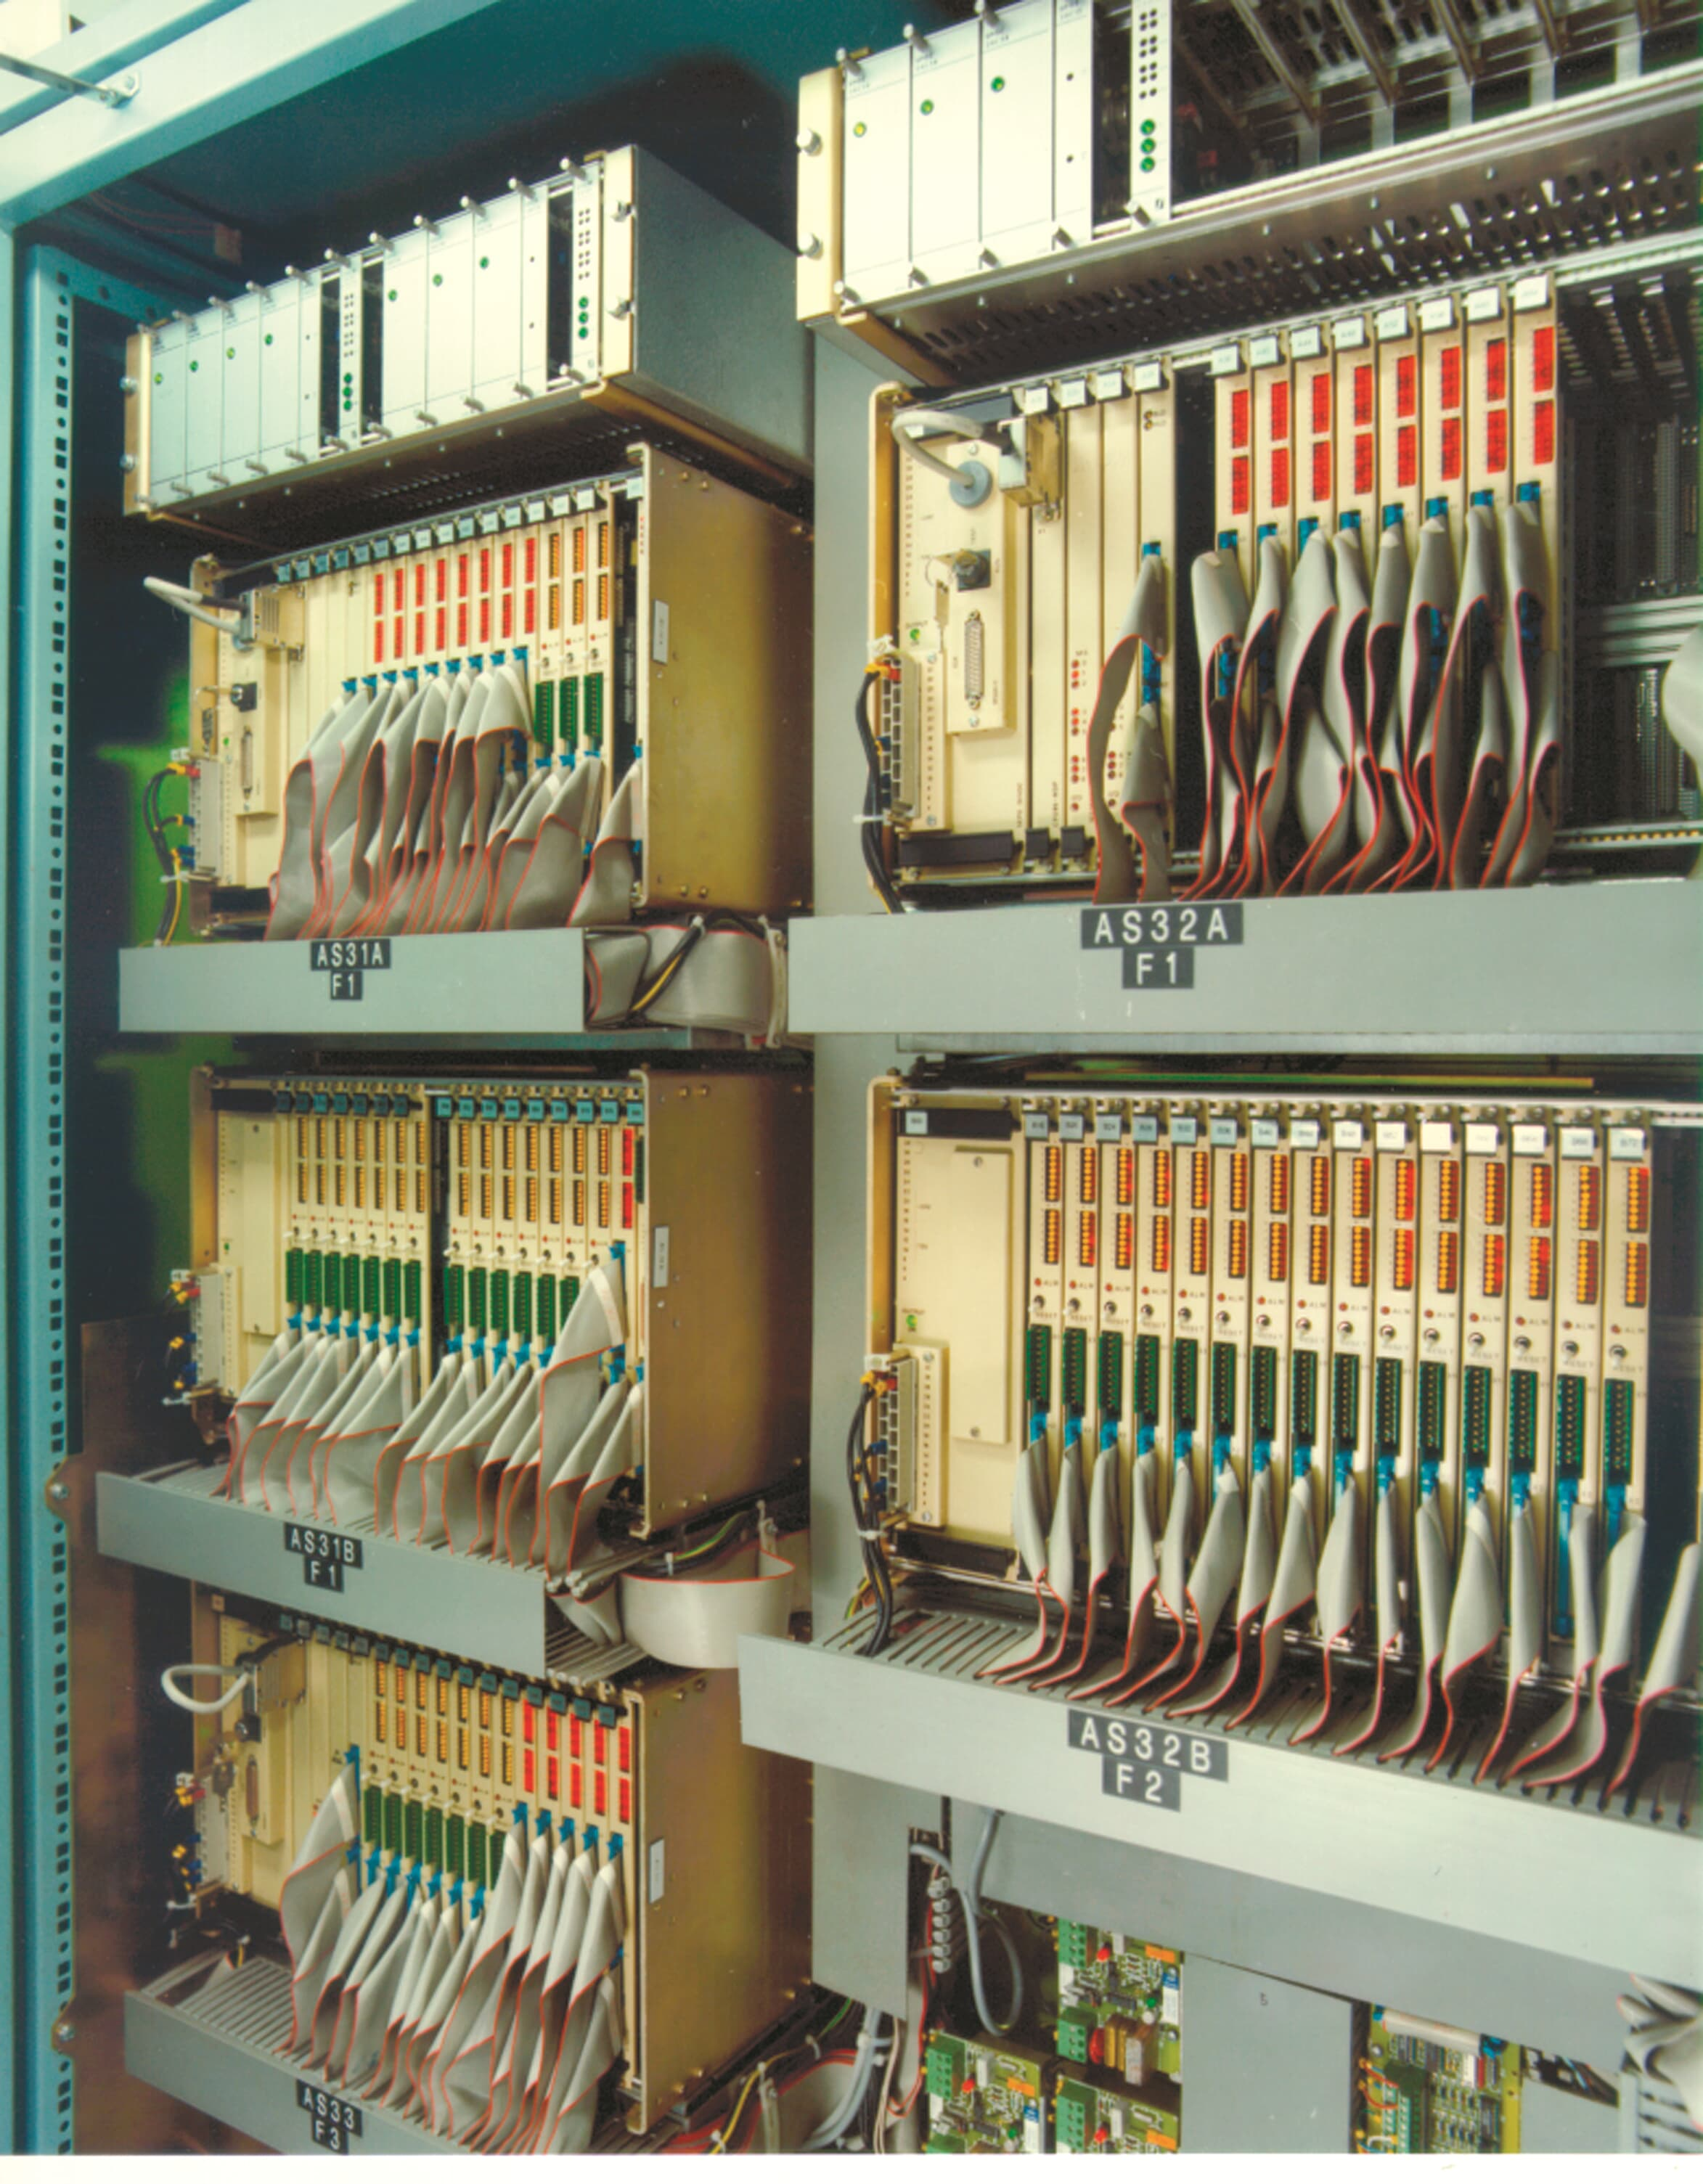 Legacy application controllers